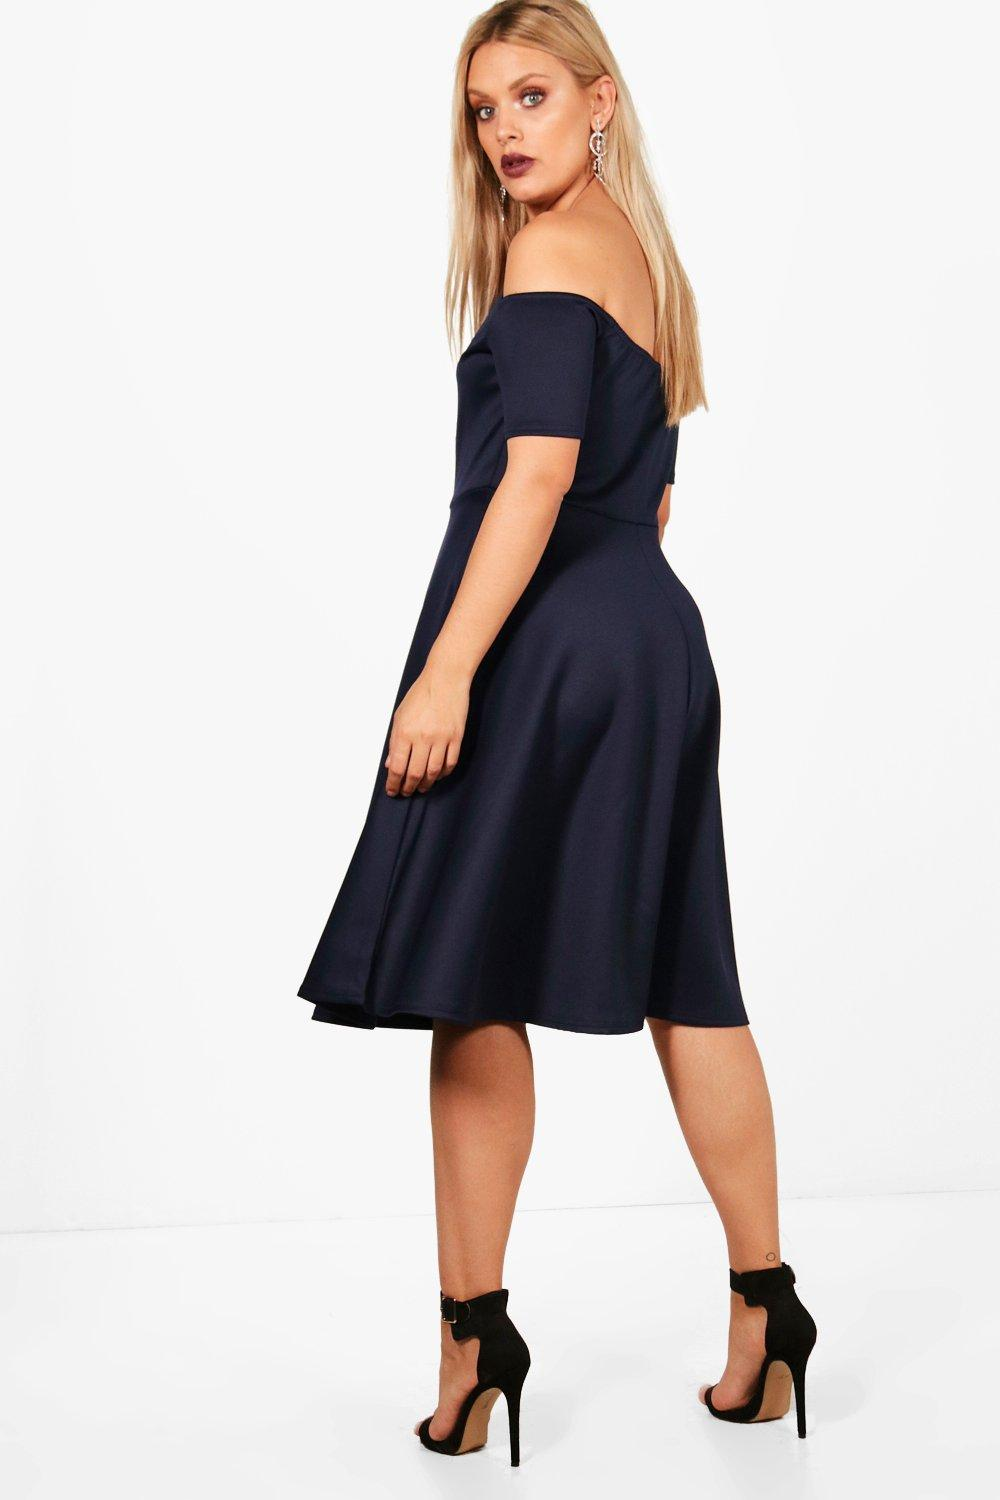 Boohoo Womens Plus Size Scallop Off Shoulder Midi Skater Dress  ad82dc29f